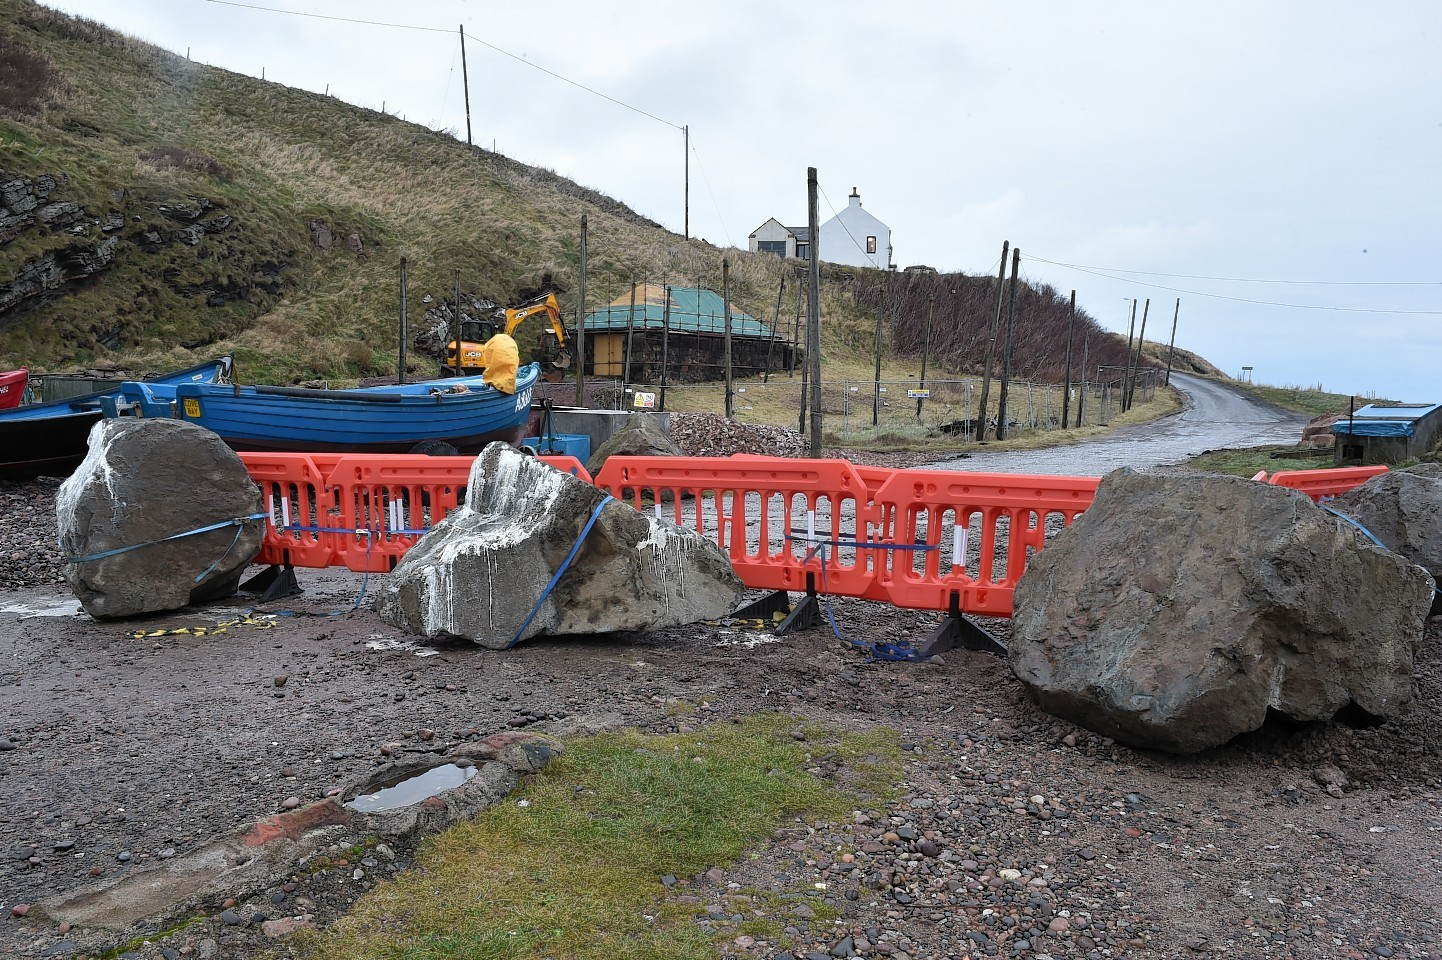 Large boulders and smaller stones at Cove Harbour to prevent access. Picture by Colin Rennie